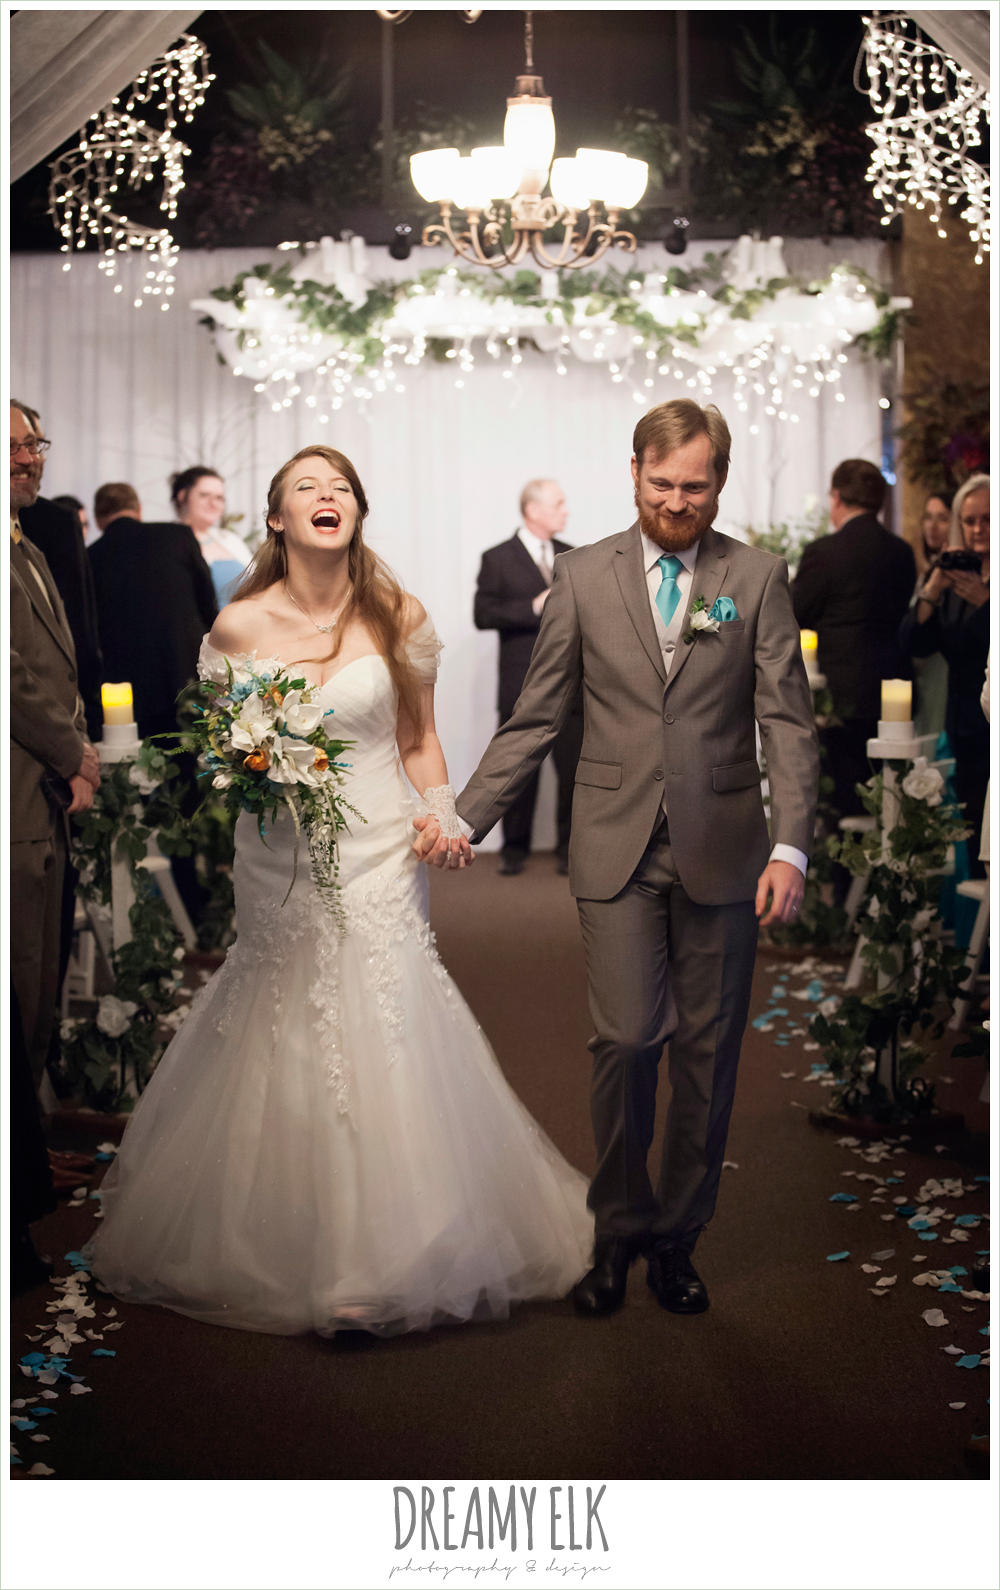 bride and groom walking down the aisle, indoor wedding ceremony, off the shoulder mermaid wedding dress, groom in gray suit, le jardin winter wedding {dreamy elk photography and design}